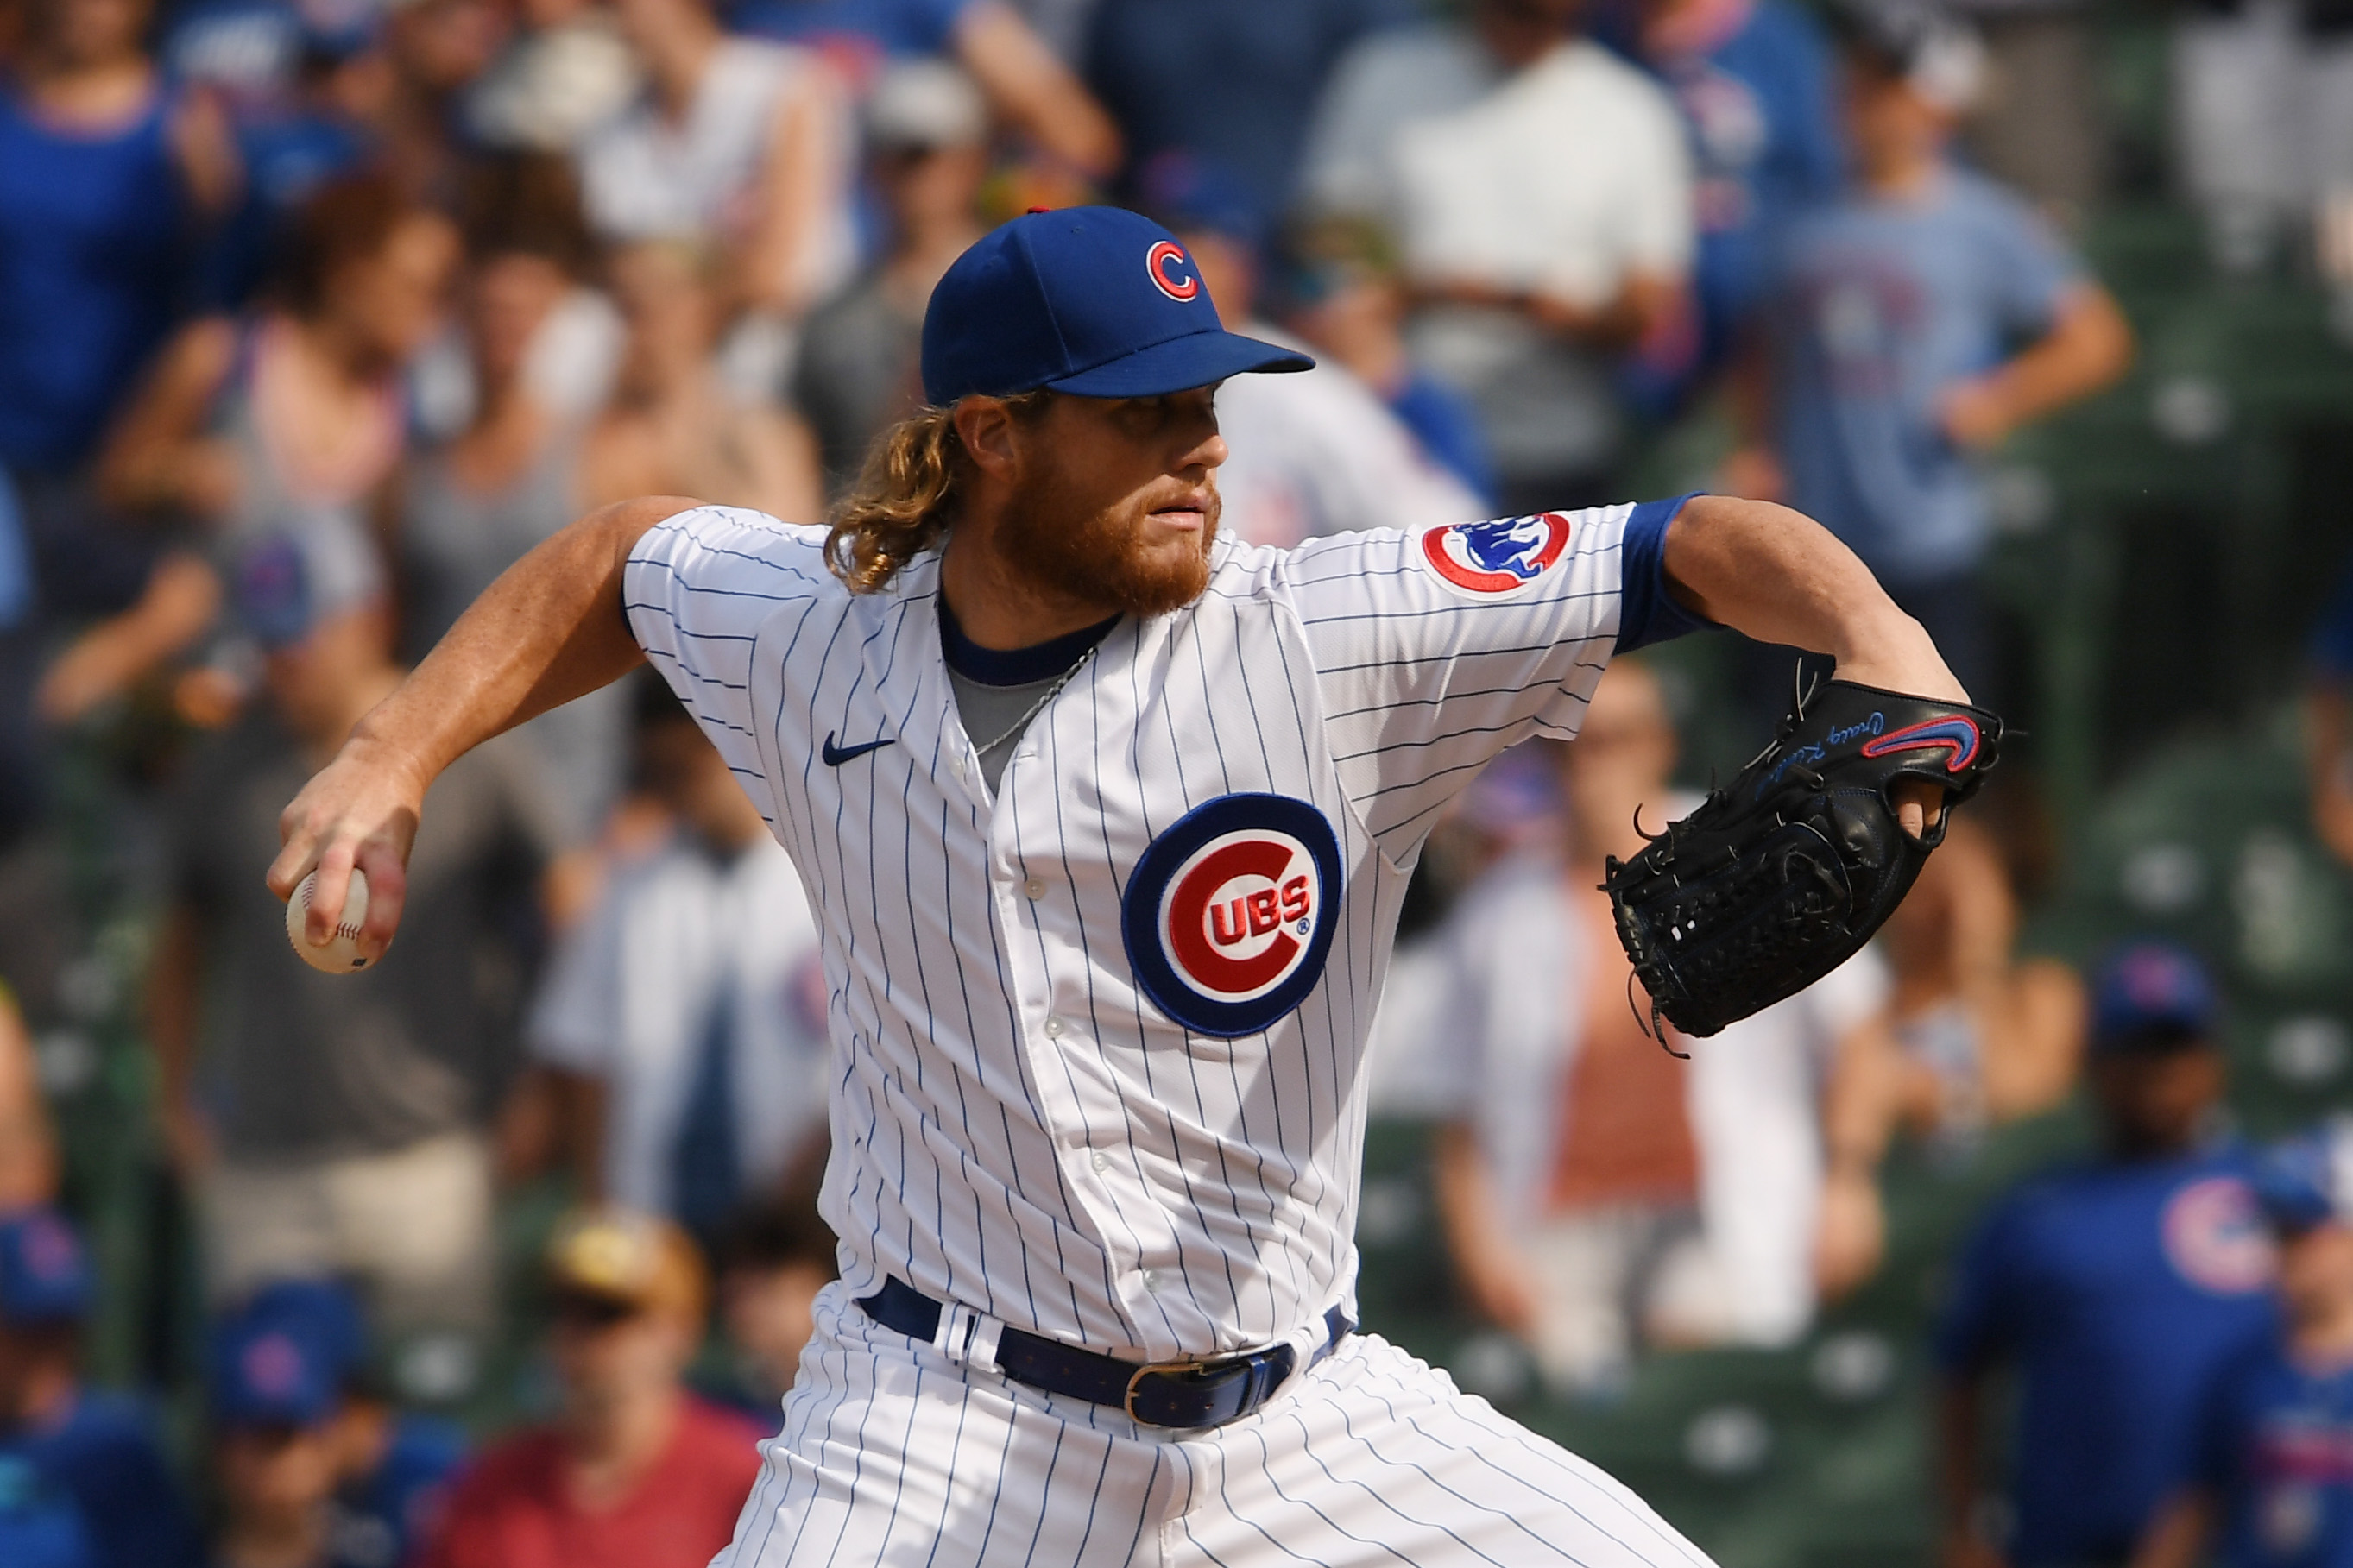 Craig Kimbrel of the Chicago Cubs pitches in the ninth inning against the Arizona Diamondbacks at Wrigley Field on July 25, 2021 in Chicago, Illinois.